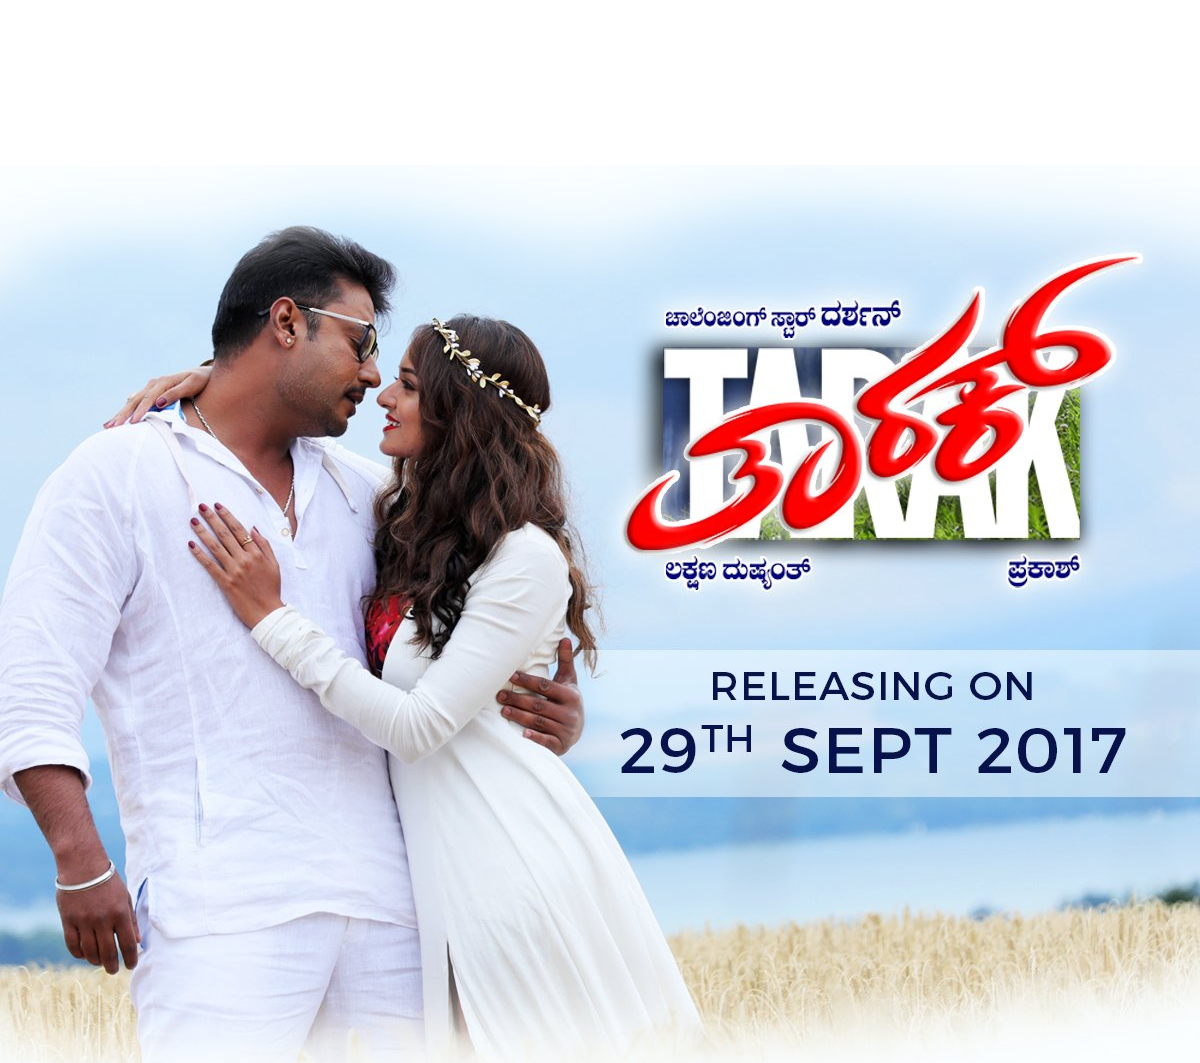 Tarak kannada movie review : Nice Masala film but lacks extra wow element